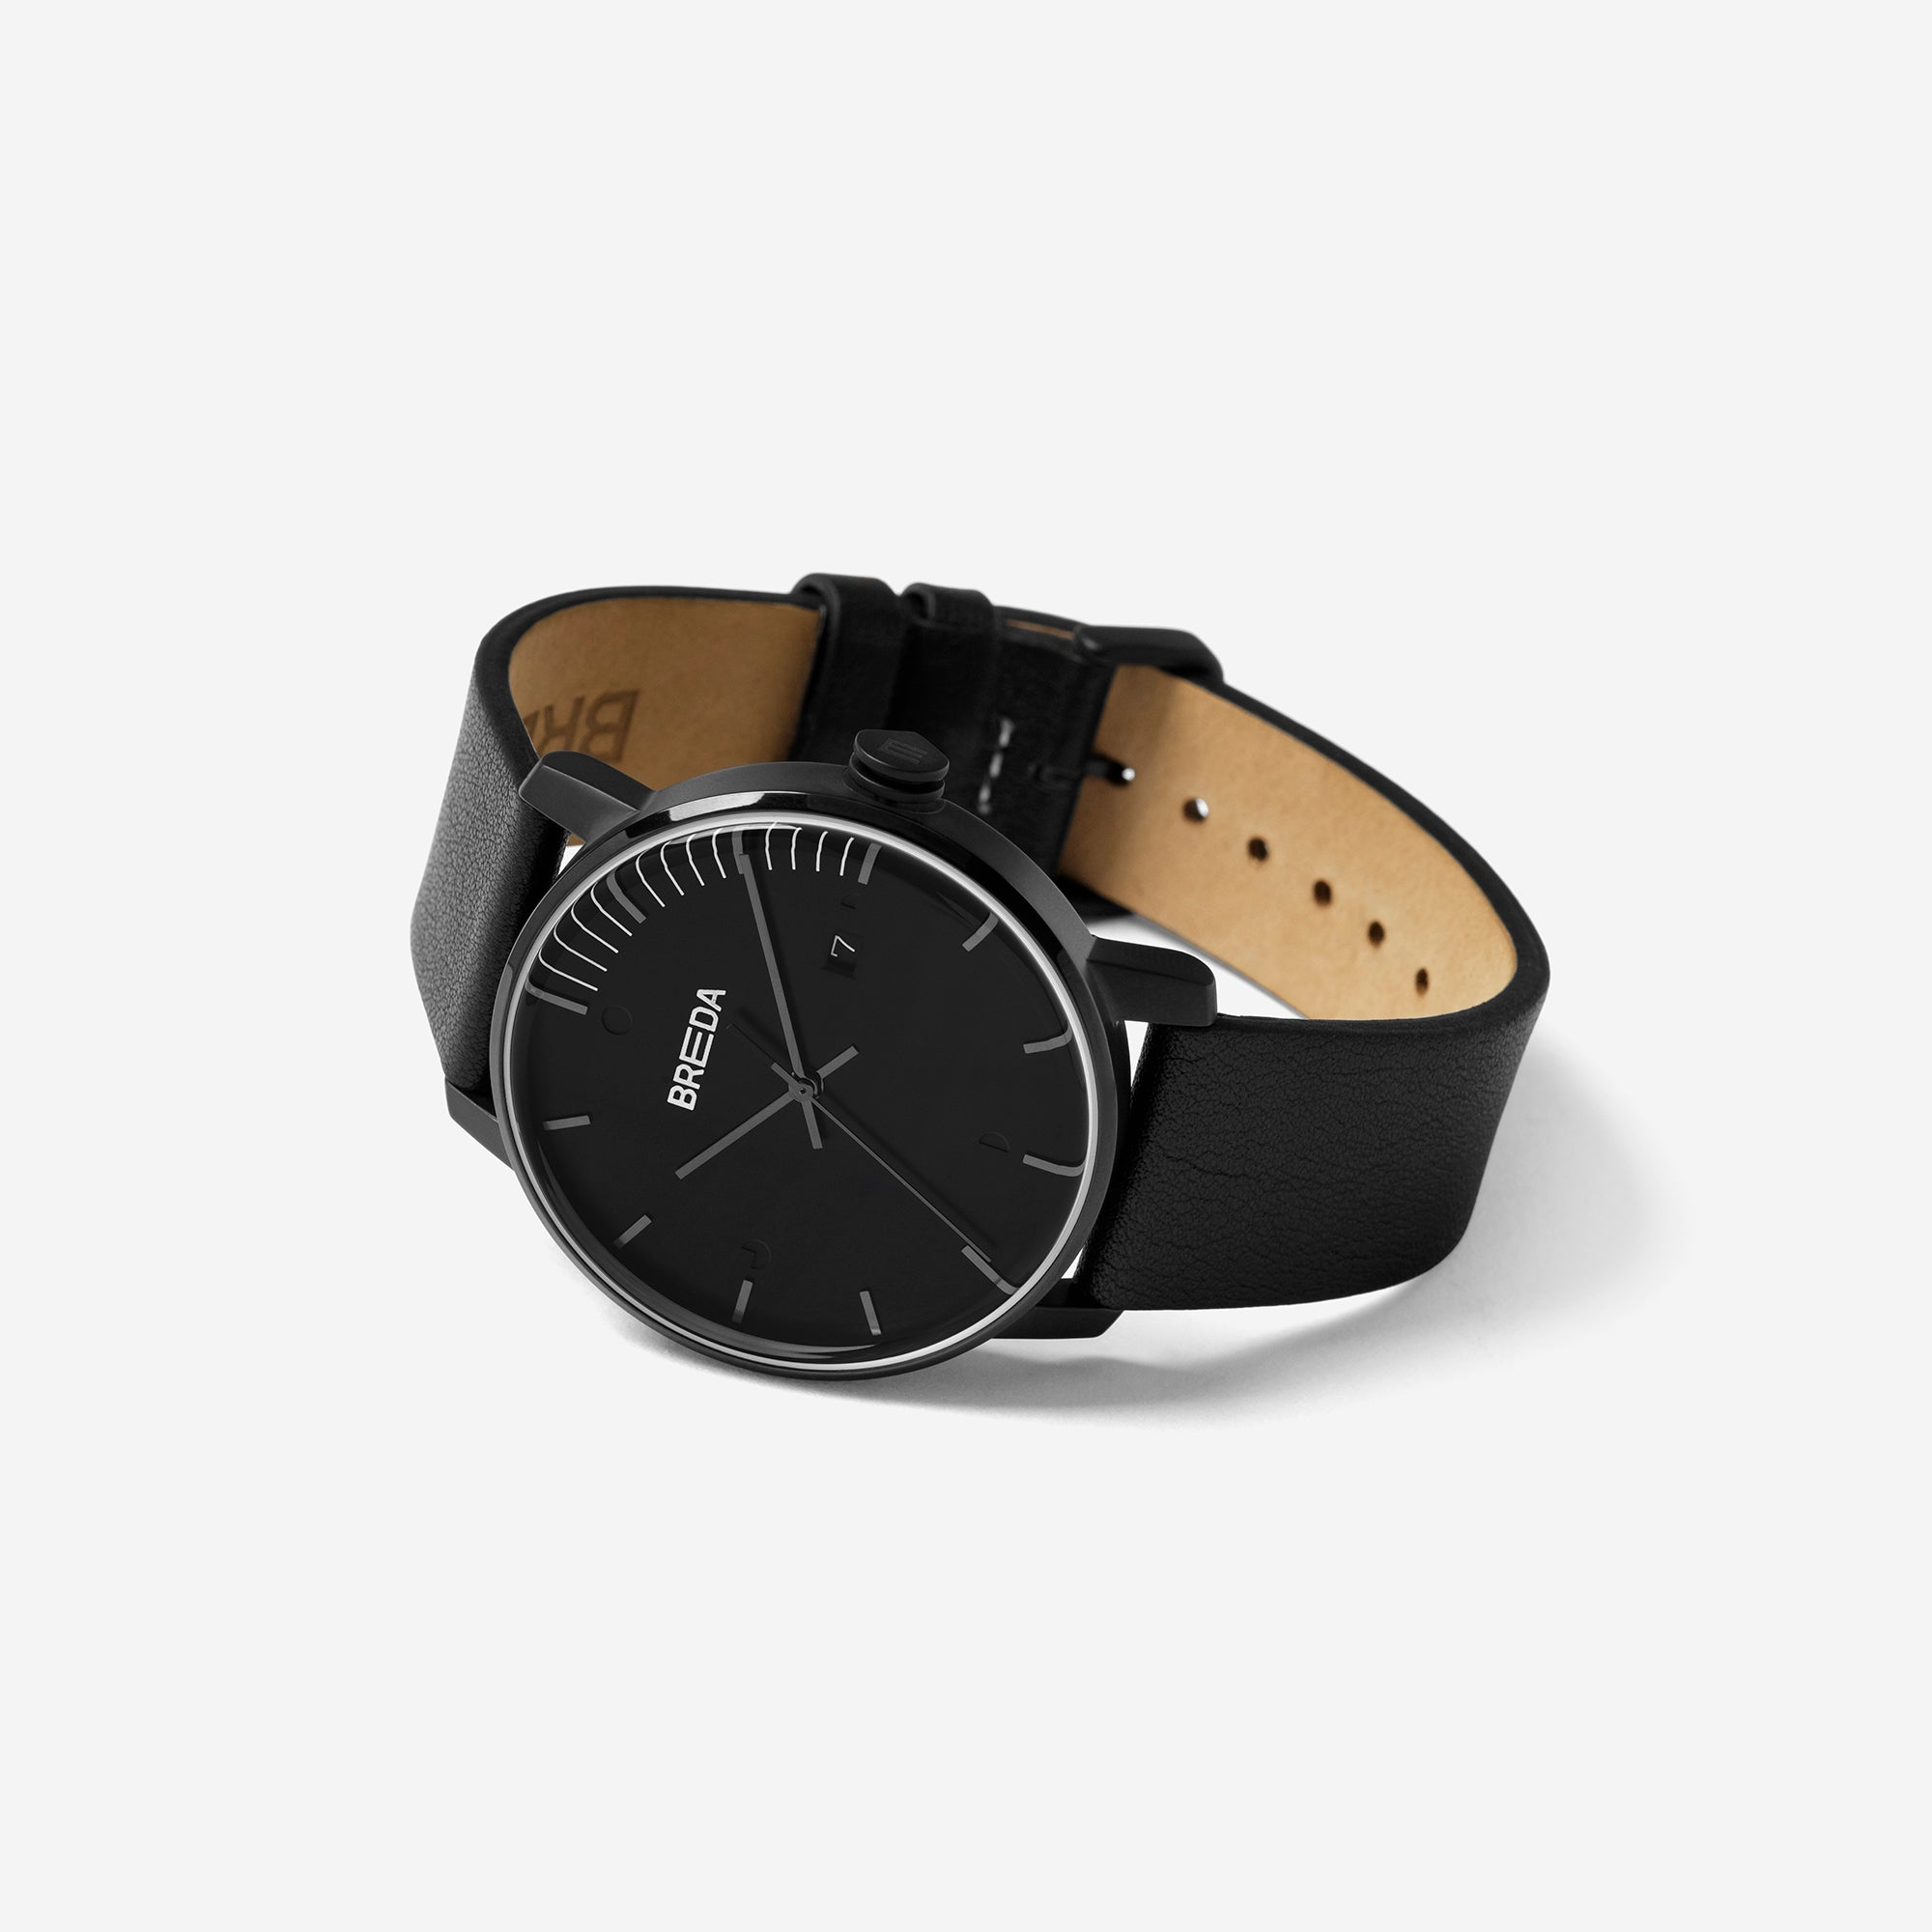 //cdn.shopify.com/s/files/1/0879/6650/products/breda-phase-9000f-black-black-watch-angle_a5525512-095f-4d2c-9a92-3883d494768c_1024x1024.jpg?v=1543262606